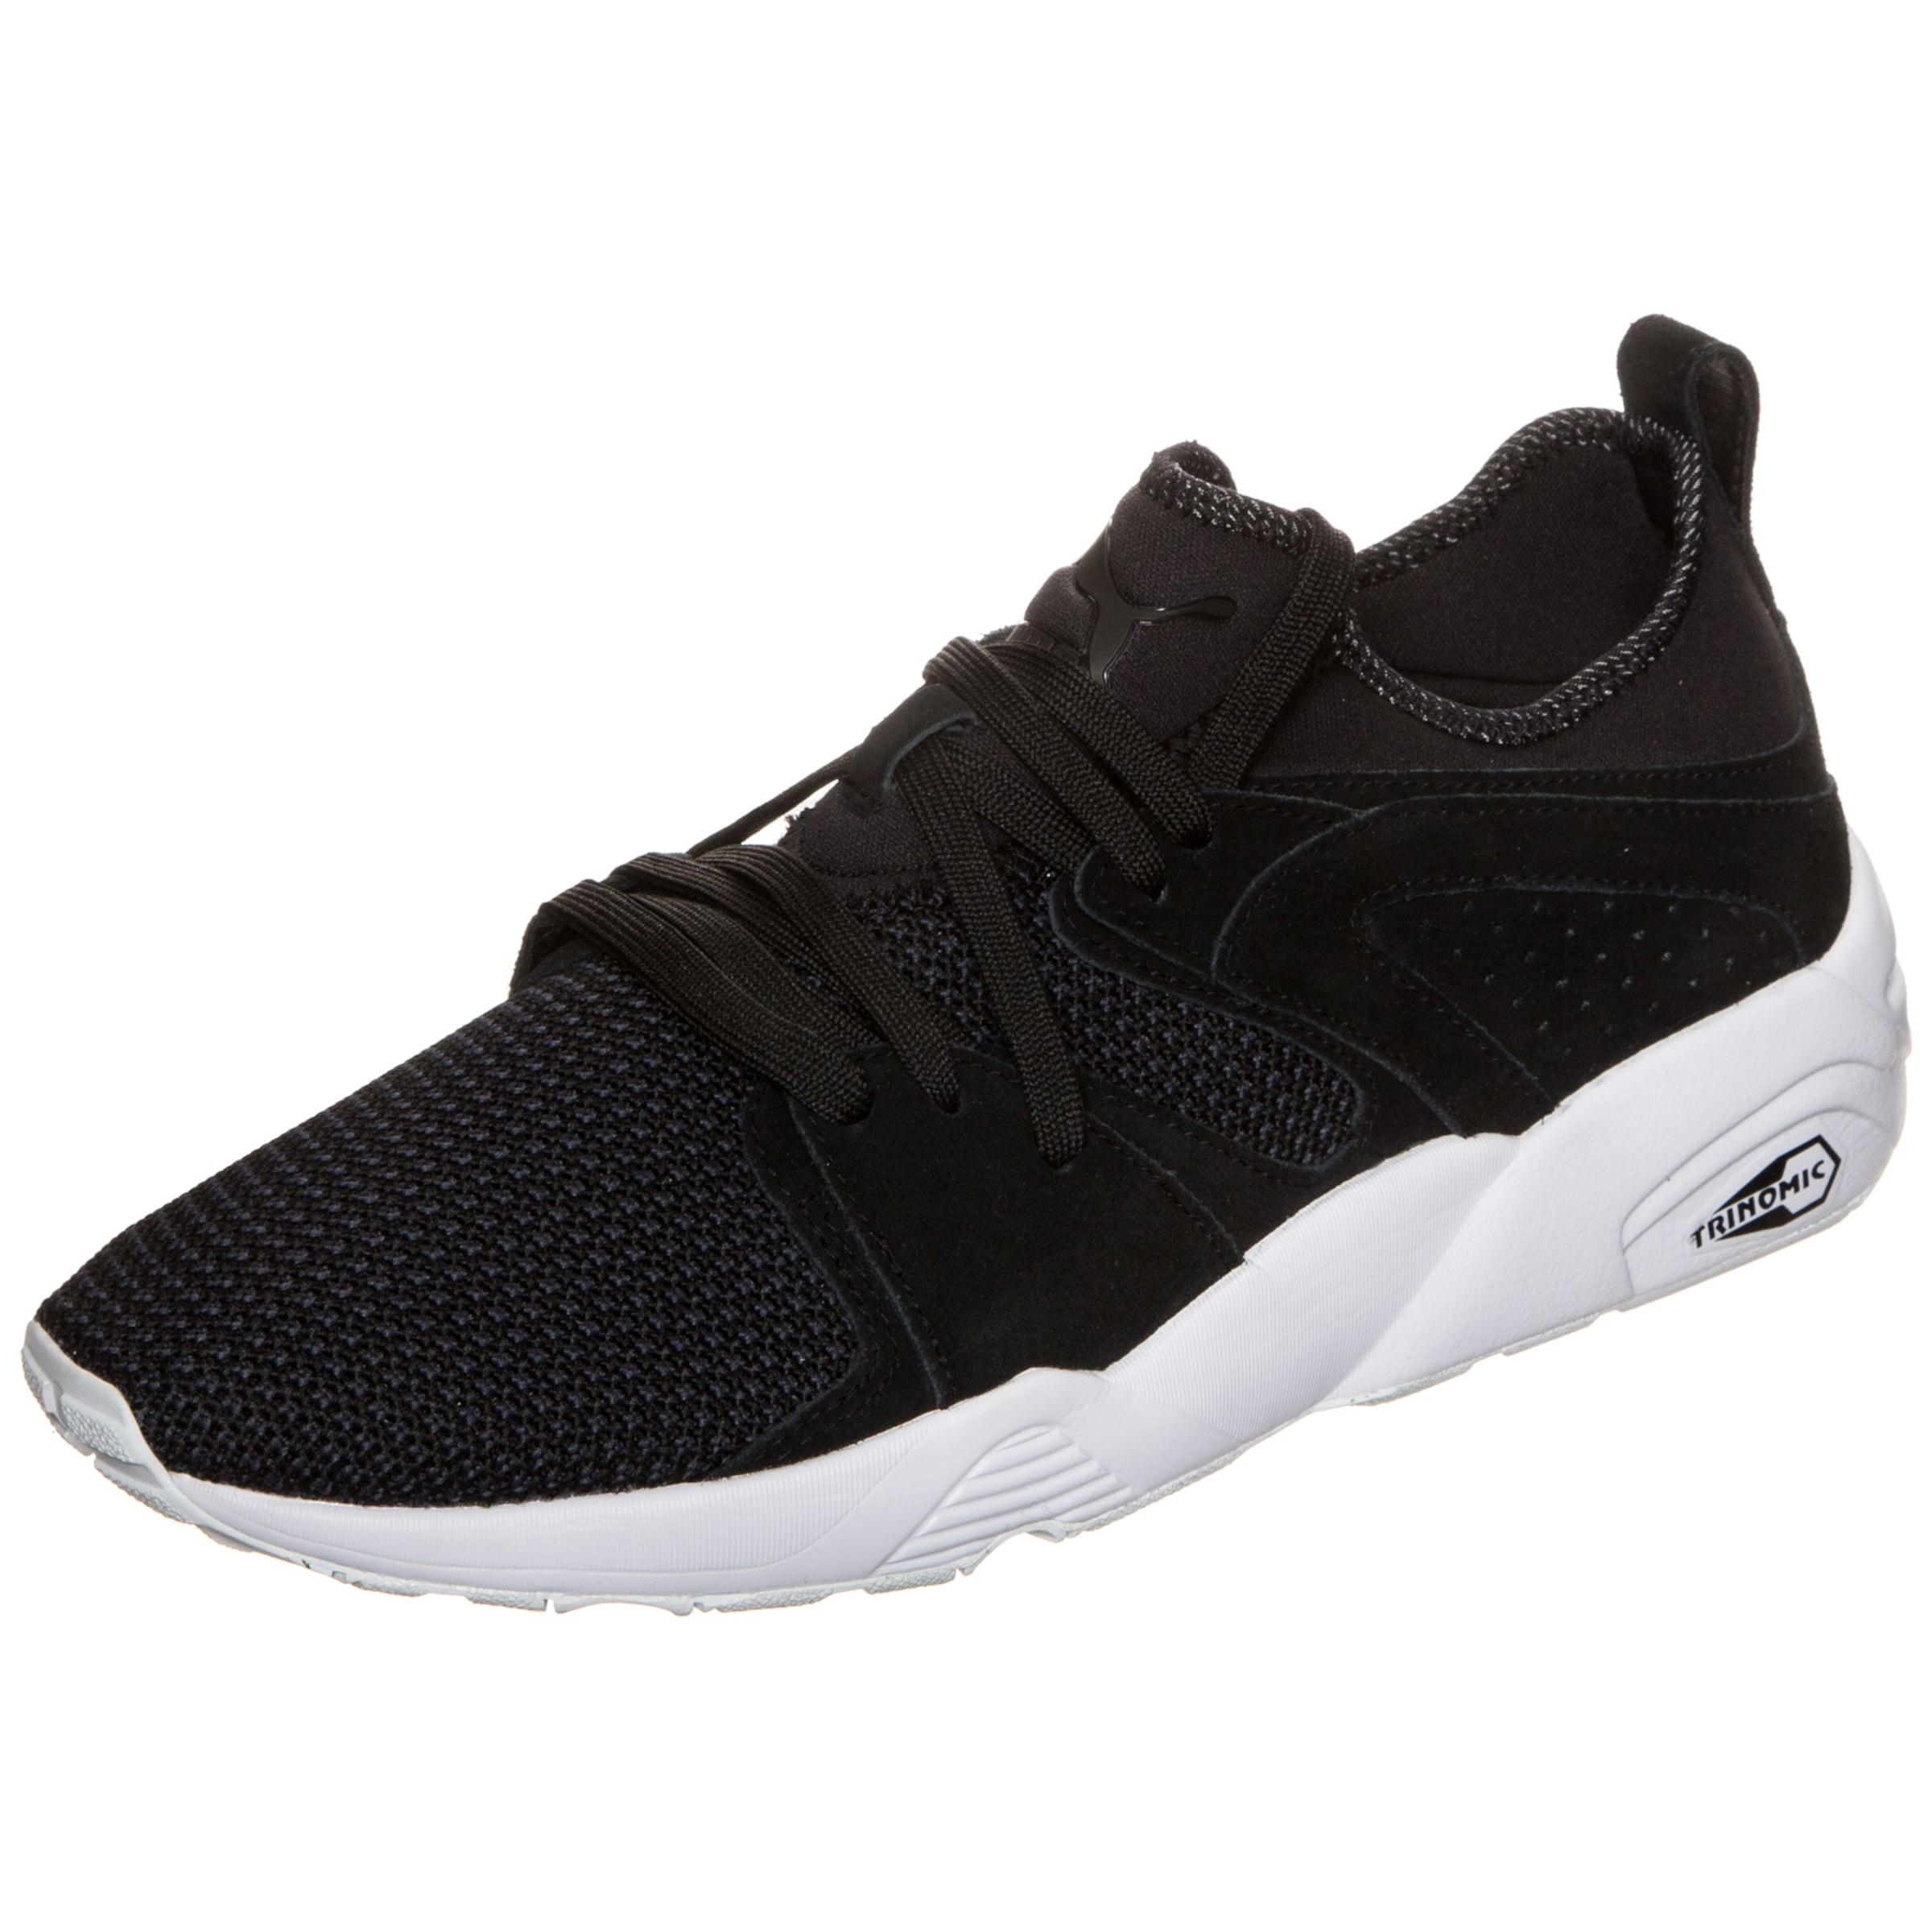 PUMA  Blaze of Glory Soft Tech  Sneaker